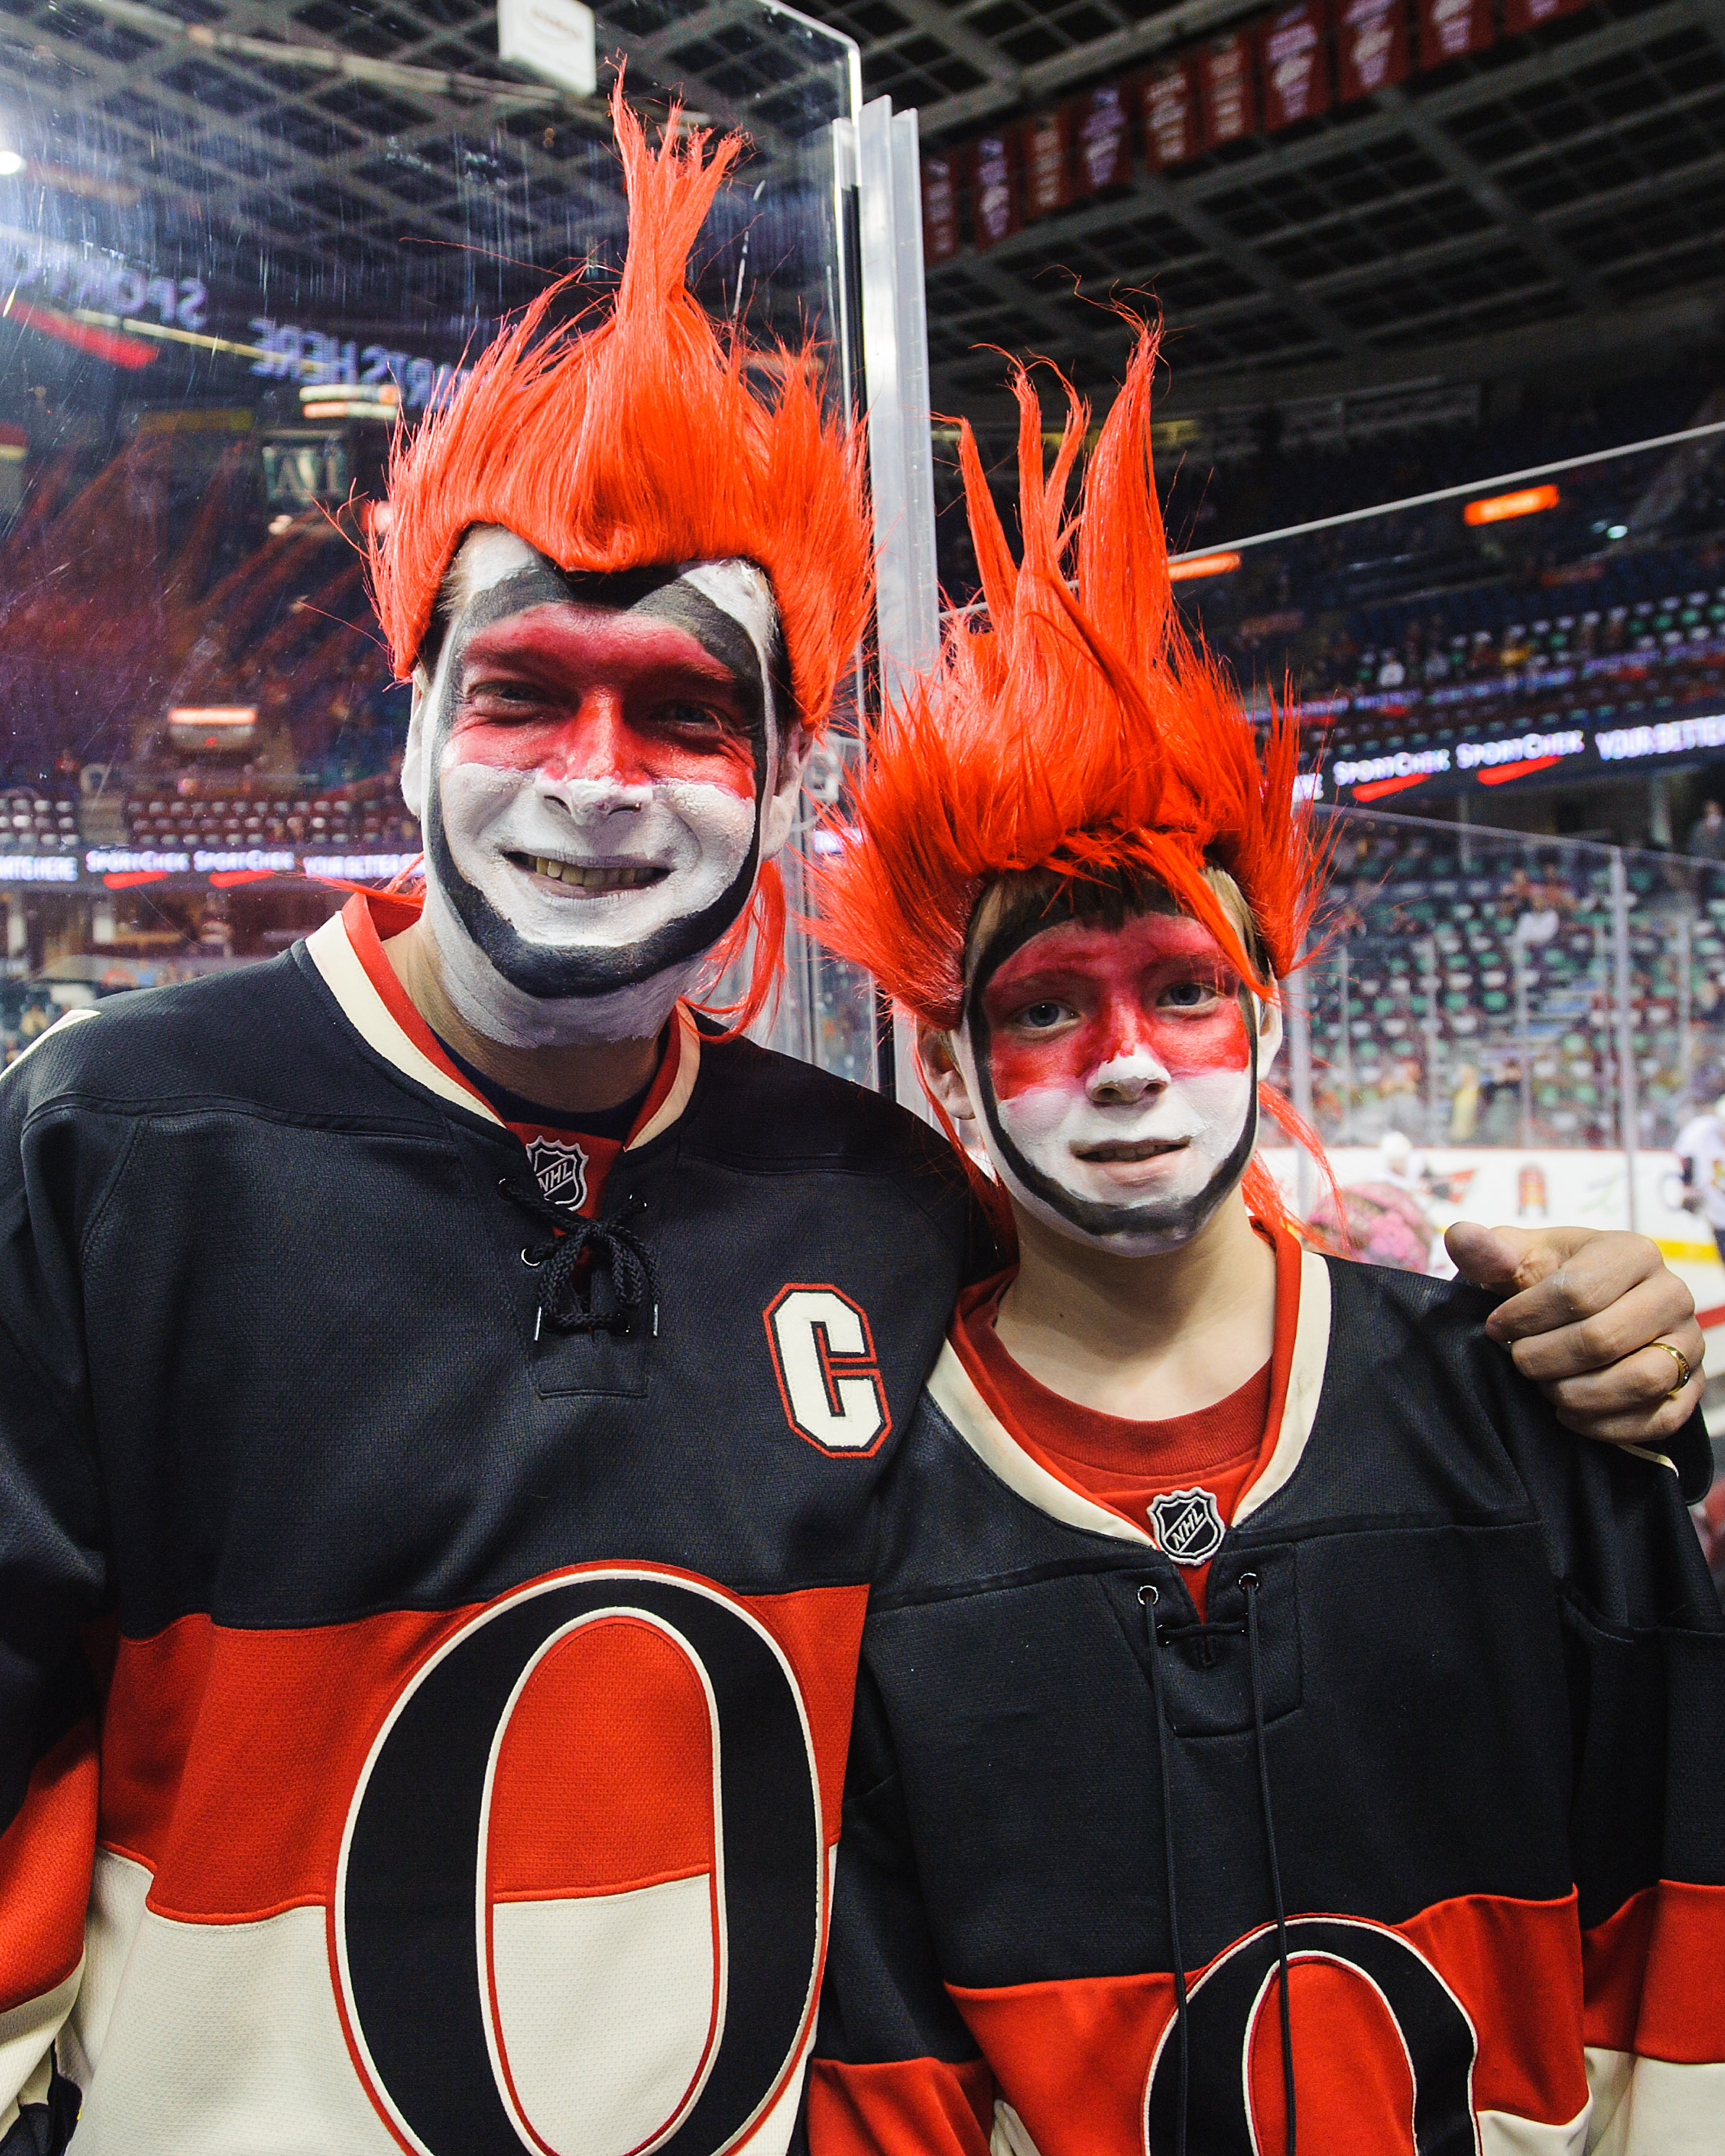 Gotta feel bad for the embarrassment these superfans must have felt after Wednesday's loss.